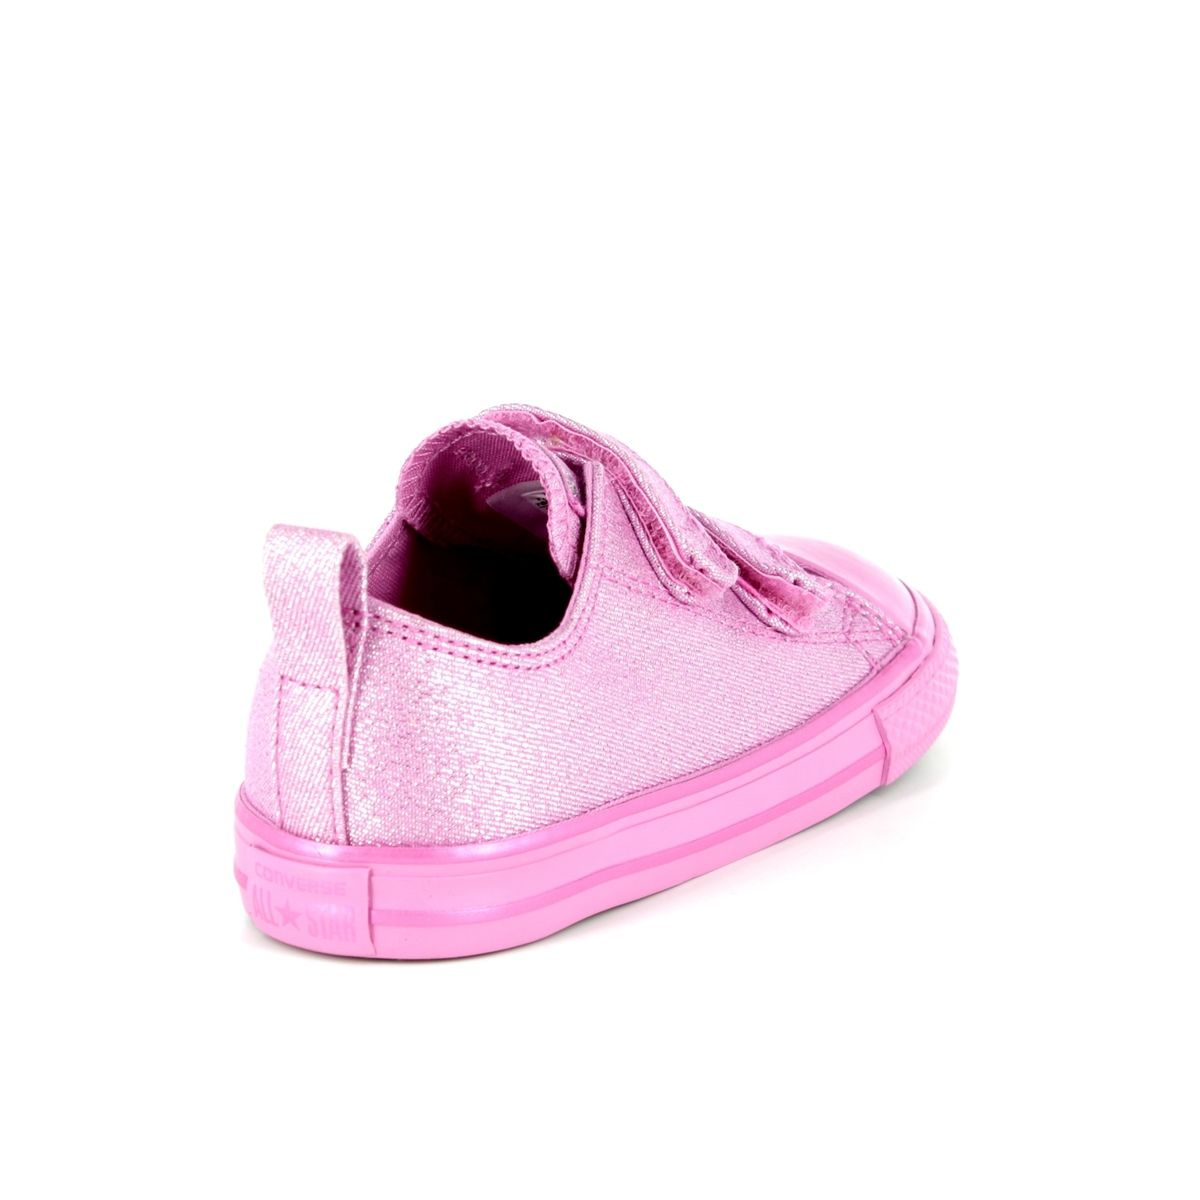 4f32d41c65d3 Converse Trainers - Pink multi - 760061C ALL STAR OX VELCRO 2V